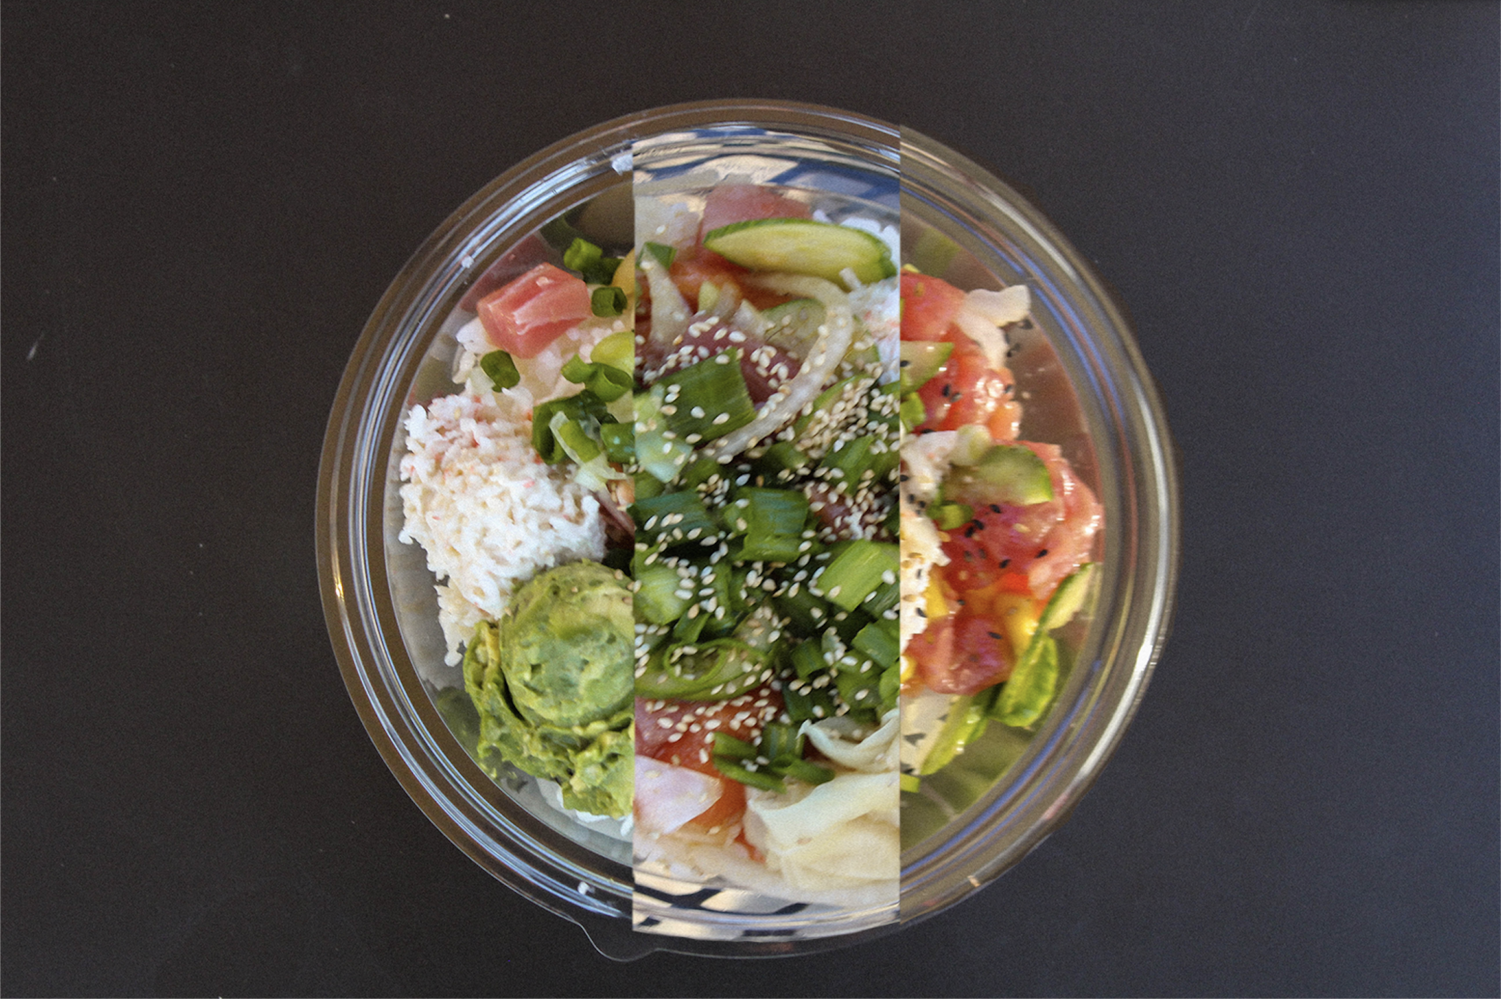 Each poke shop has many toppings that customers can choose from in order to customize upon arrival. Despite the fact that many of the stores had similar toppings, all three of the poke bowls created an explosion of different flavors bursting in our mouths, contributing to a unique experience each time.